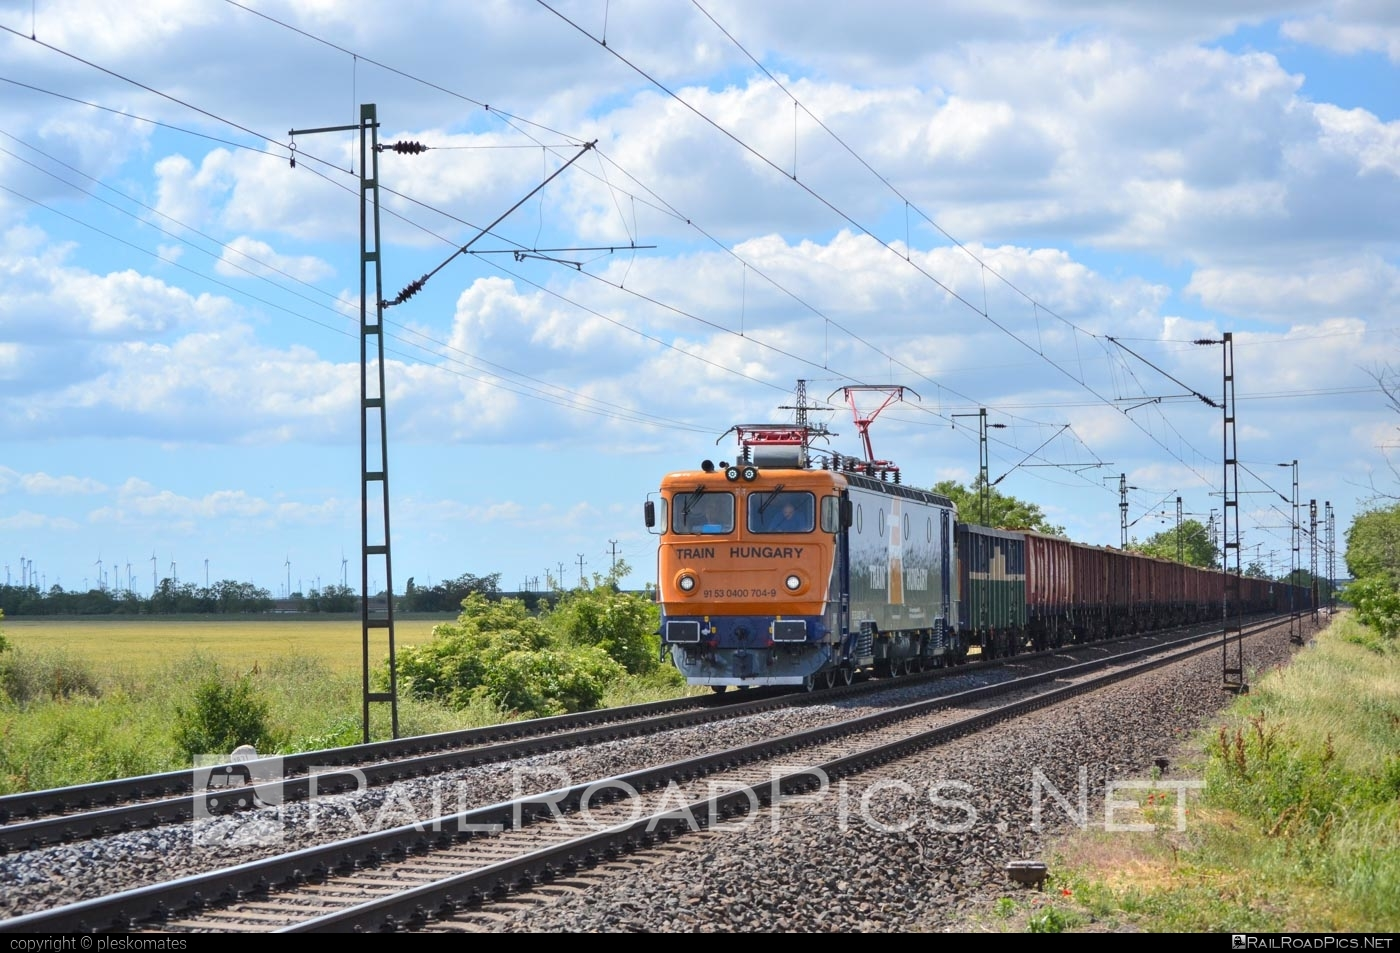 Electroputere LE 5100 - 0400 704 - 9 operated by Train Hungary Magánvasút Kft #electroputere #electroputerecraiova #electroputerele5100 #koncar #le5100